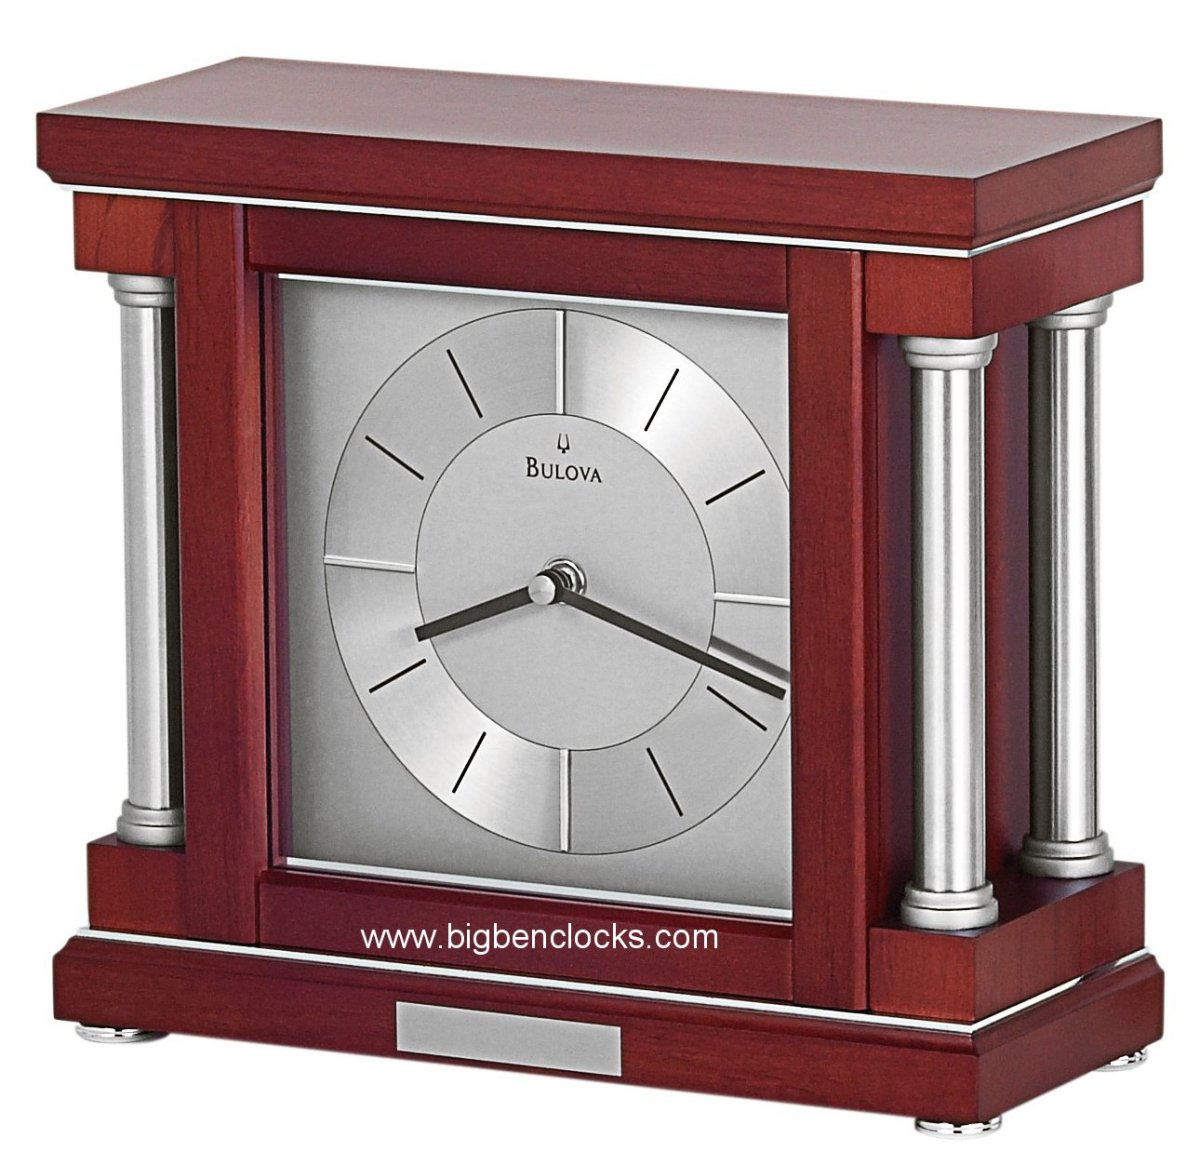 Mantle Clock Styles | Bulova Mantel Clock | Bulova Pendulum Wall Clock